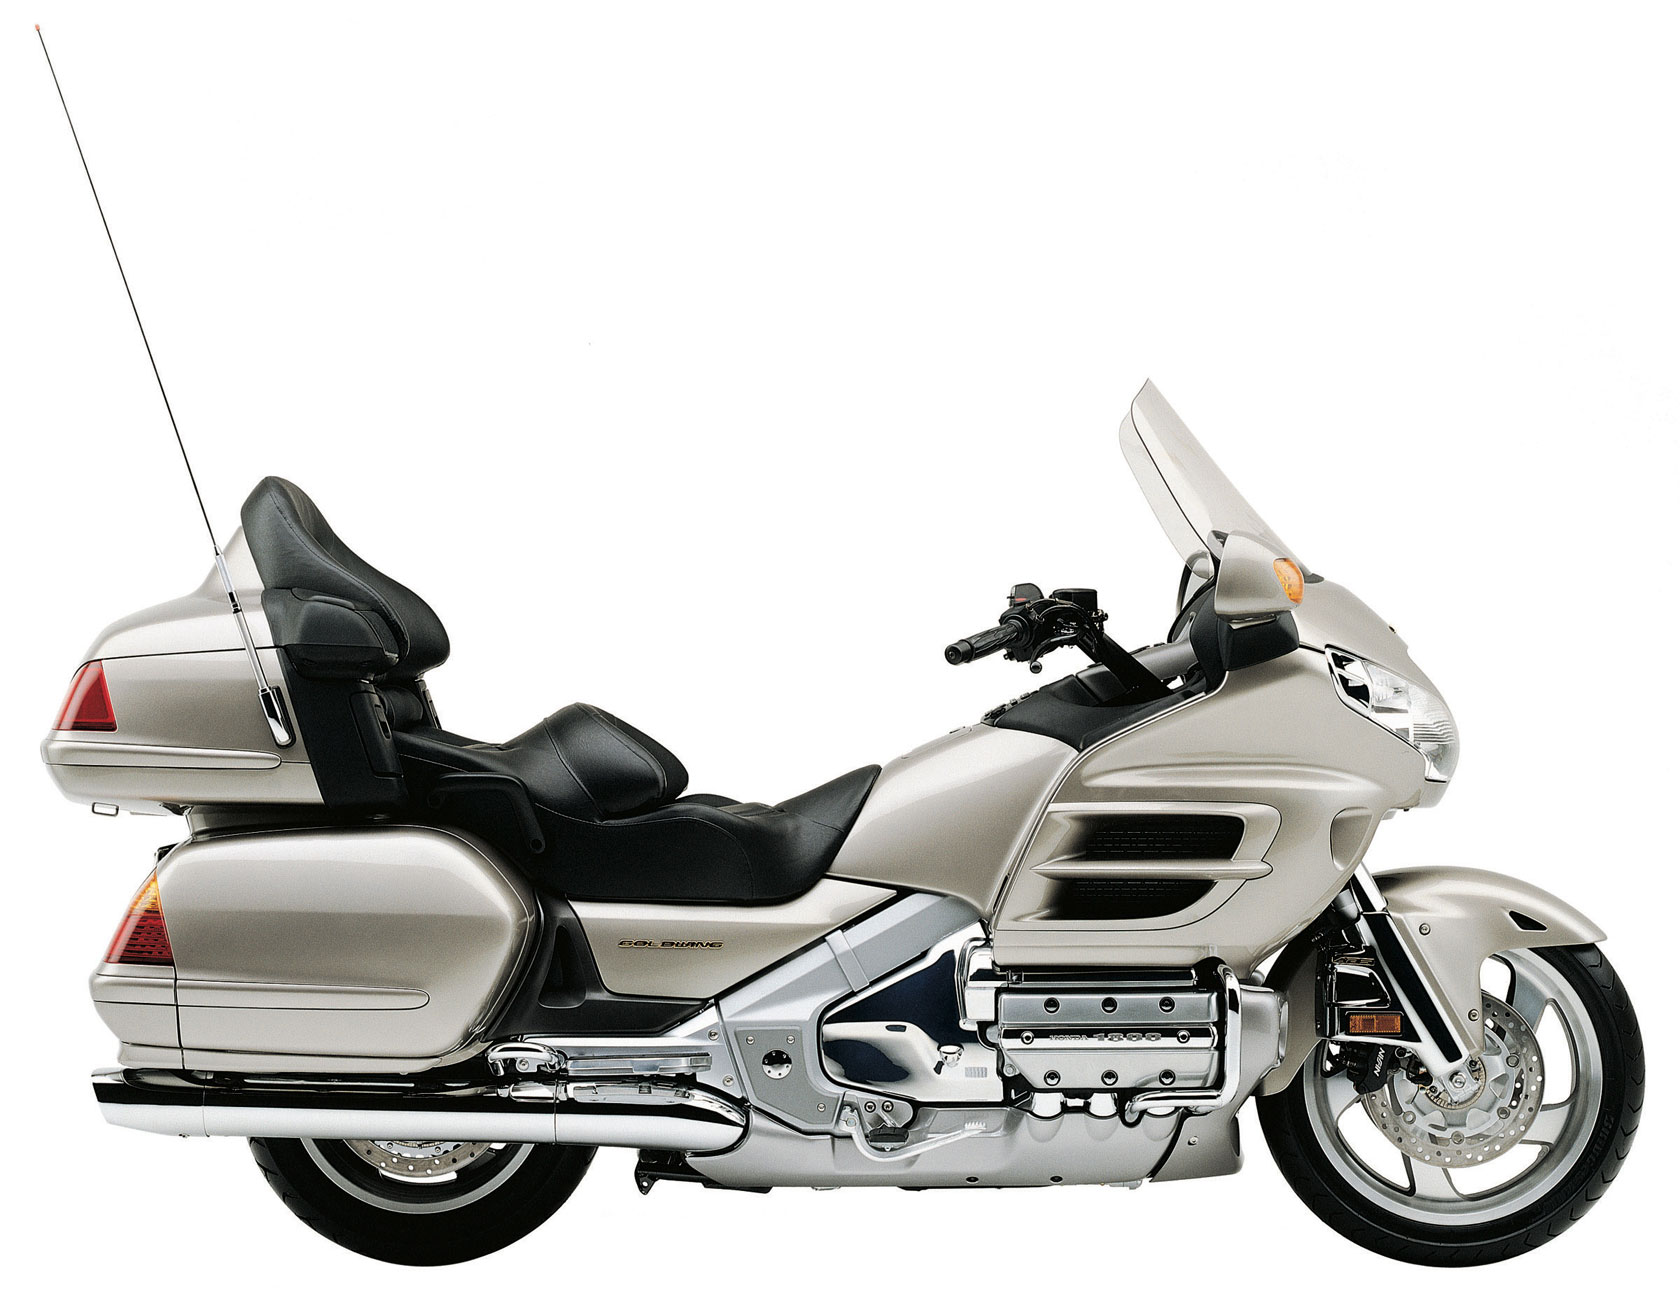 Honda GL 1800 Gold Wing 2004 images #82721